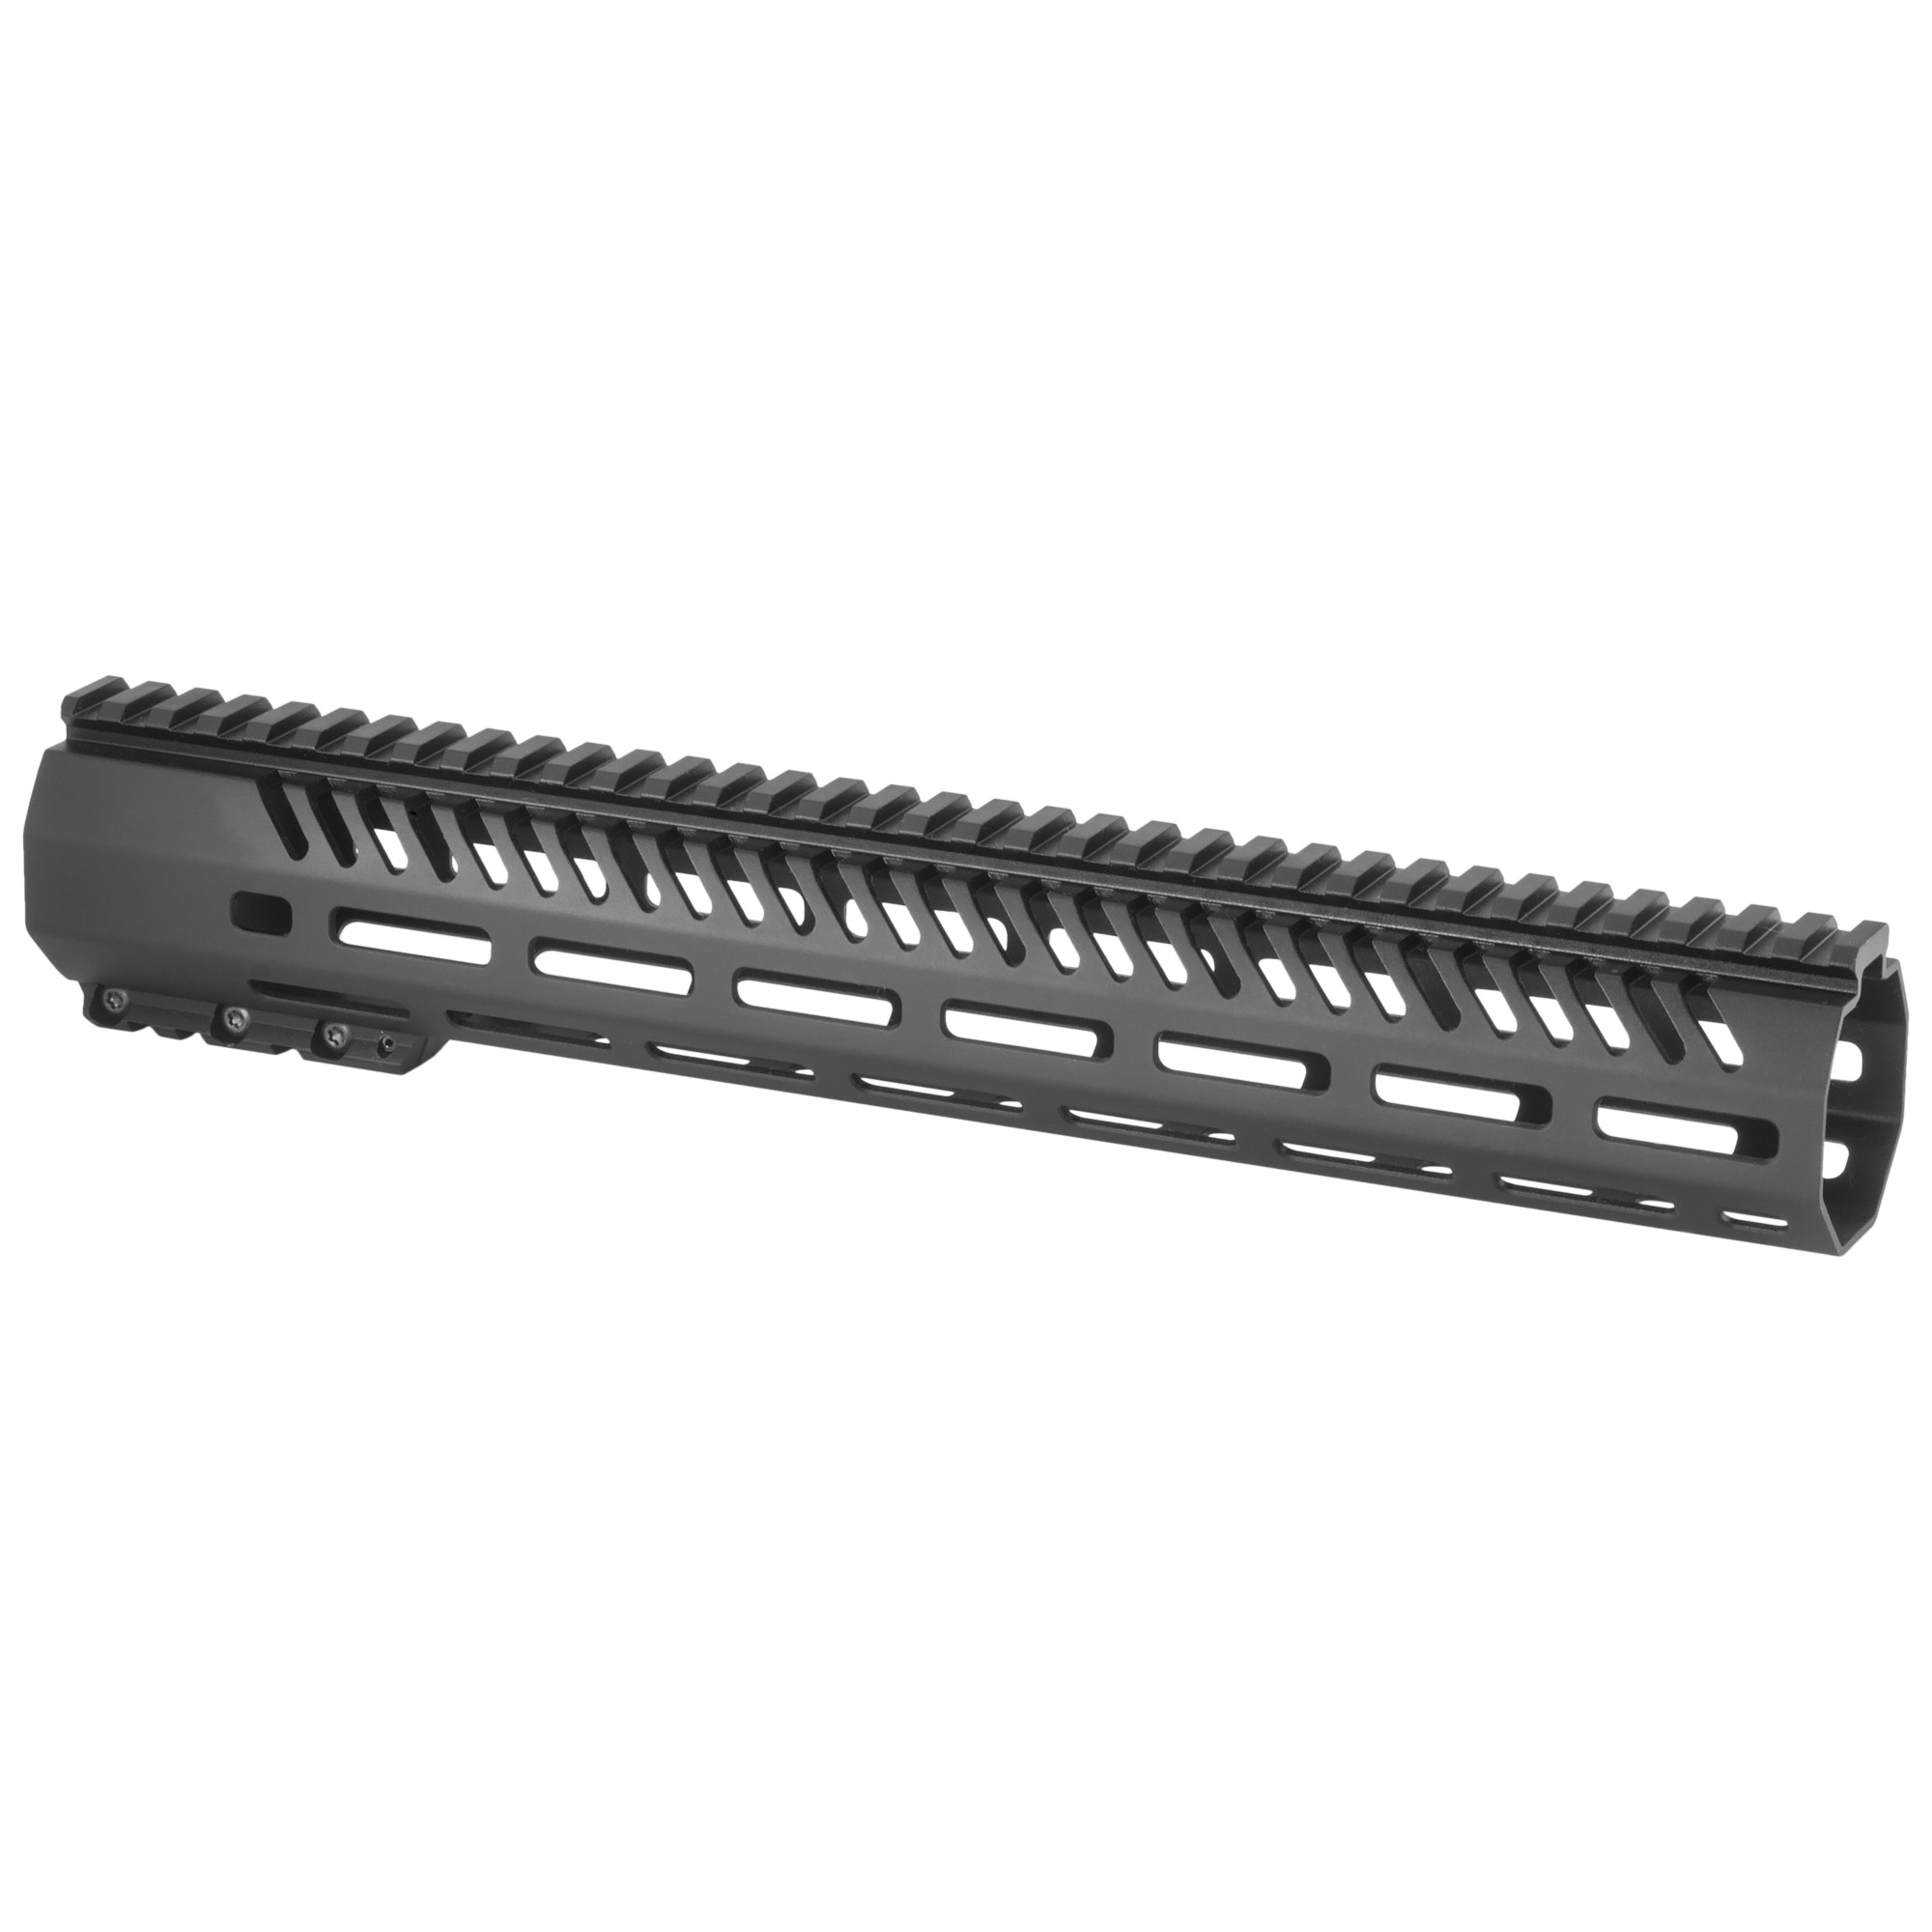 """The Tekko Metal 13.5"""" AR-15 Free float M-LOK Rail System replaces the plastic factory handguard. M-LOK(TM) attachment system provides secure mounting for MIL-STD 1913 Picatinny Rails and accessories such as vertical grips"""" lights"""" lasers"""" bipods and other rail mounted kit. Will accommodate most suppressor installations. Patent pending mounting"""" indexing and lock up system. Larger range of modularity with offset mounting positions as well as the traditional 12"""" 3"""" 6 and 9 o'clock positions. Monolithic style top rail eliminates the gap between the receiver and rail. Minor assembly required"""" utilizes standard barrel nut and will accommodate a standard front sight post"""" low profile gas block or Picatinny Rail gas block. The M-LOK(TM) system allows for universal modularity between numerous manufacturers of accessories"""" and accessory rails."""